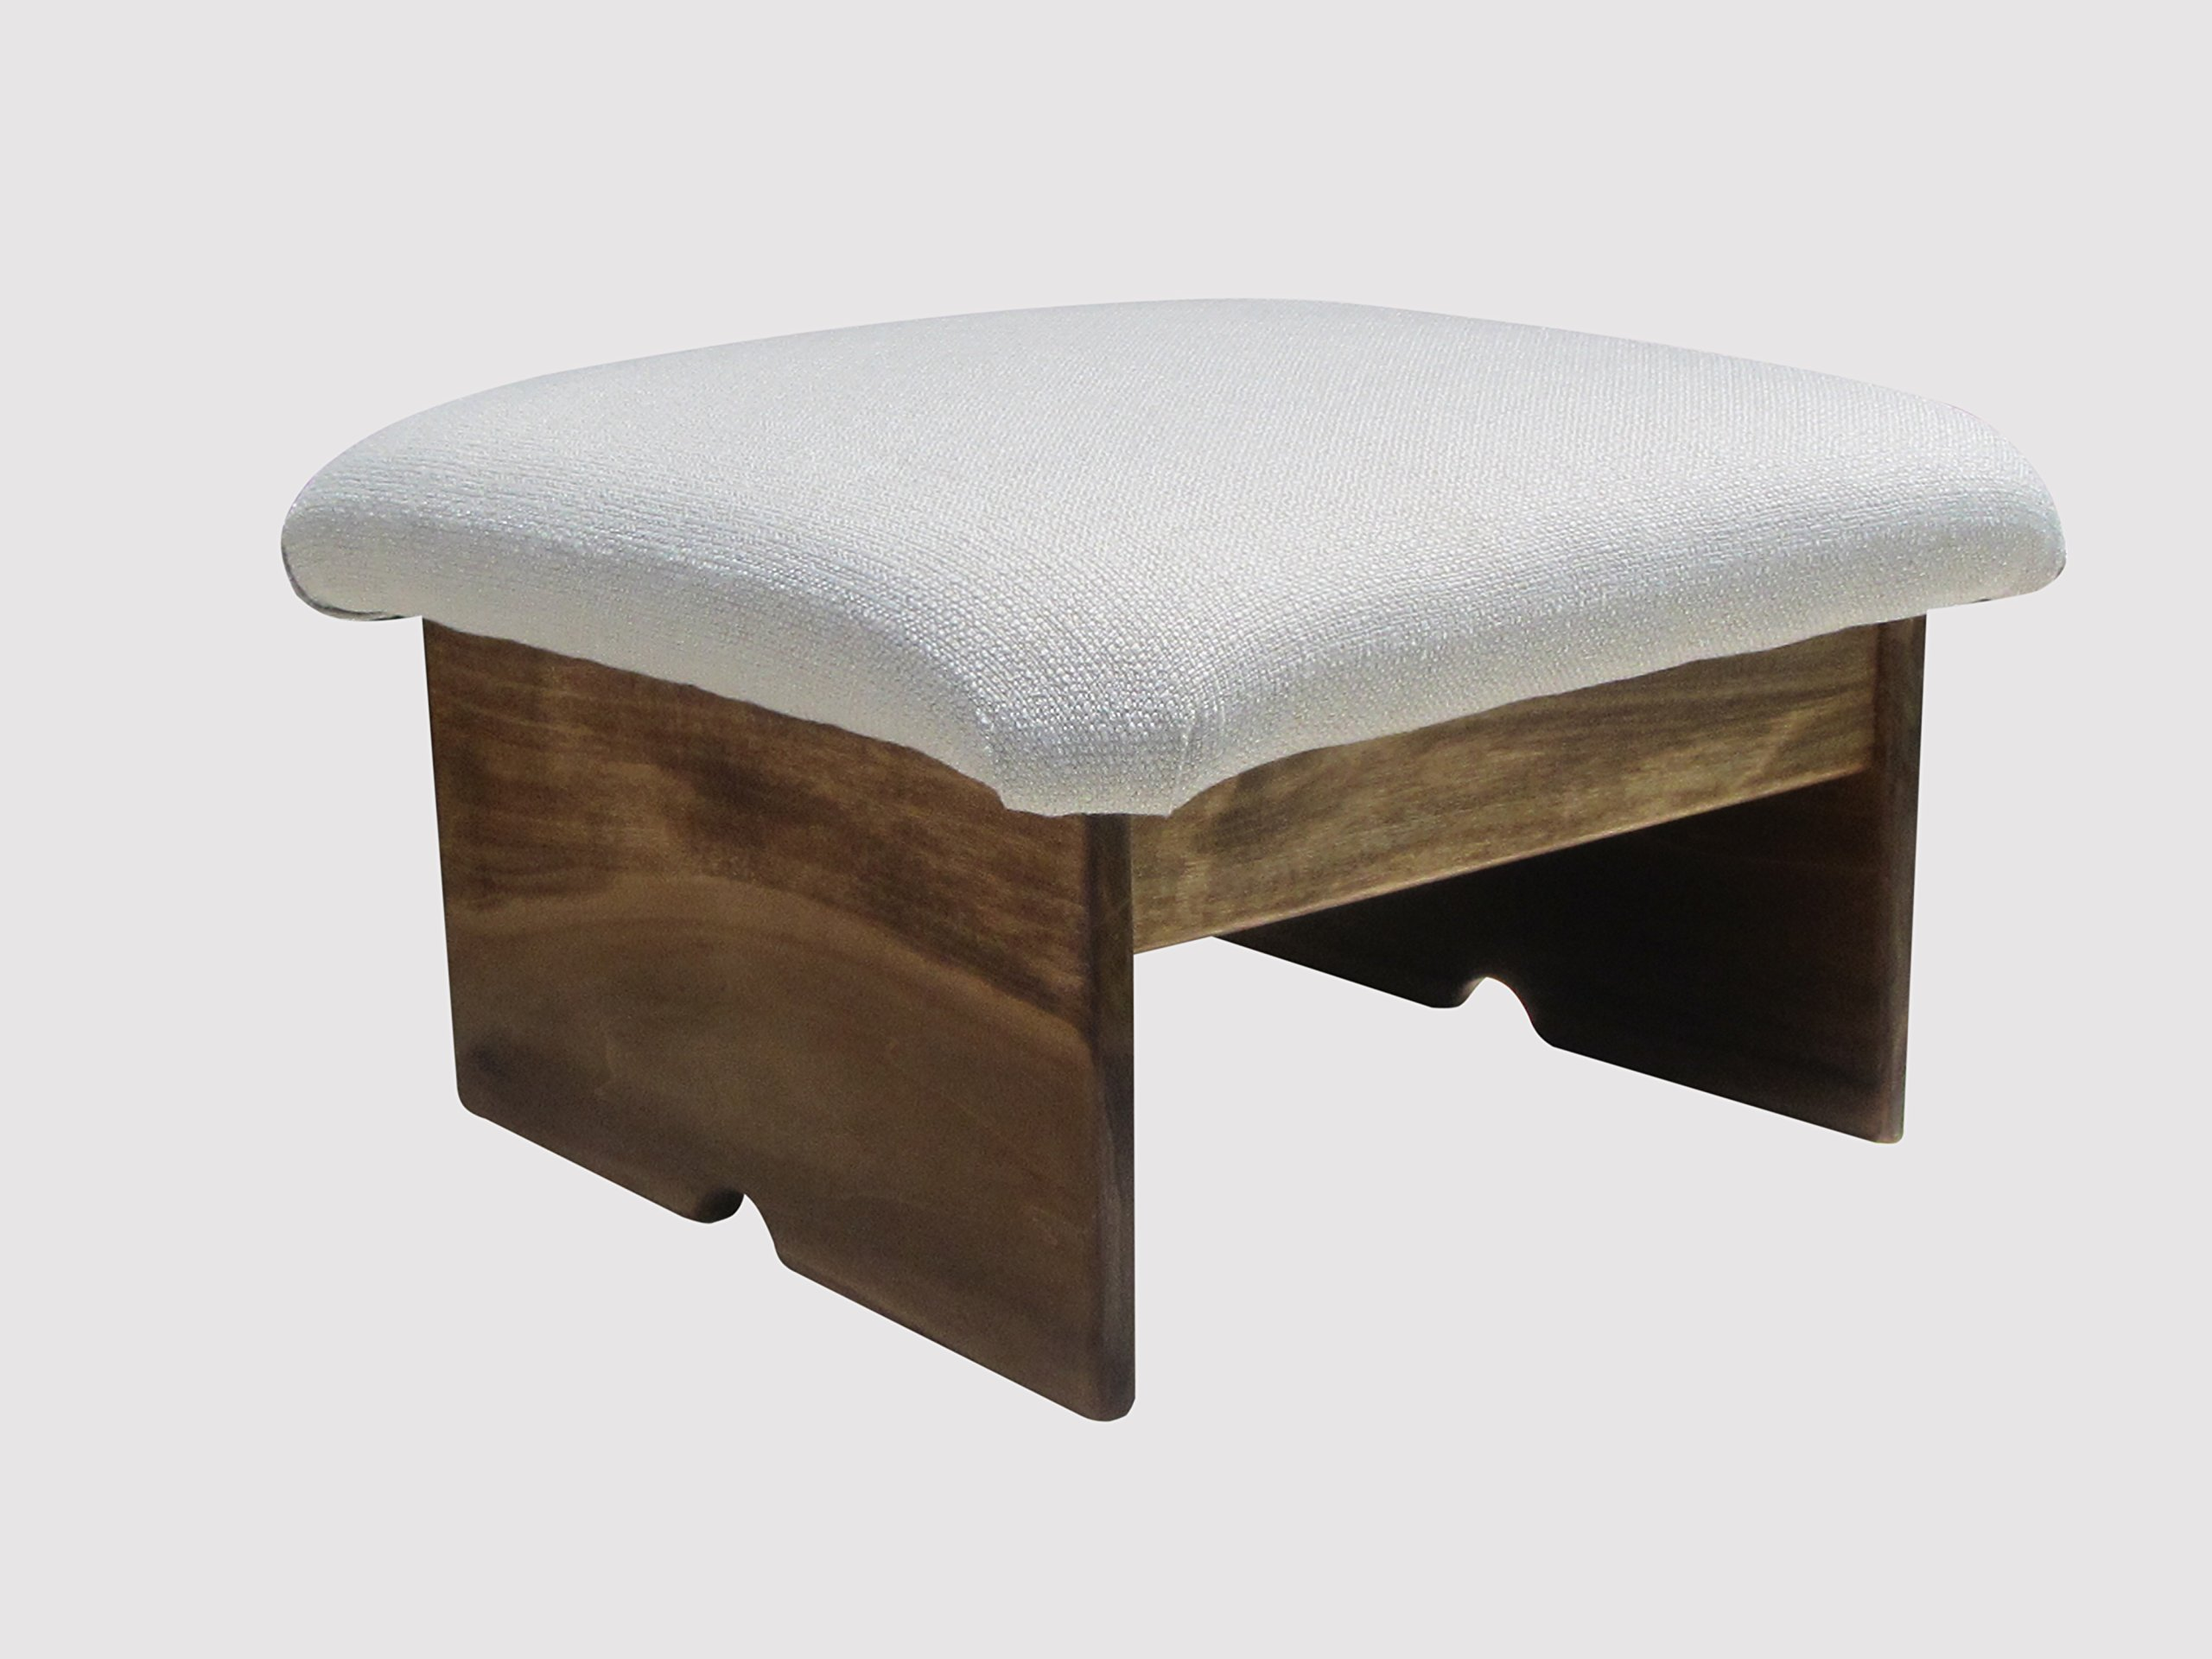 Padded Foot Stool Doggie Step, Walnut Stain, Silverado 10'' Tall (Made in the USA)